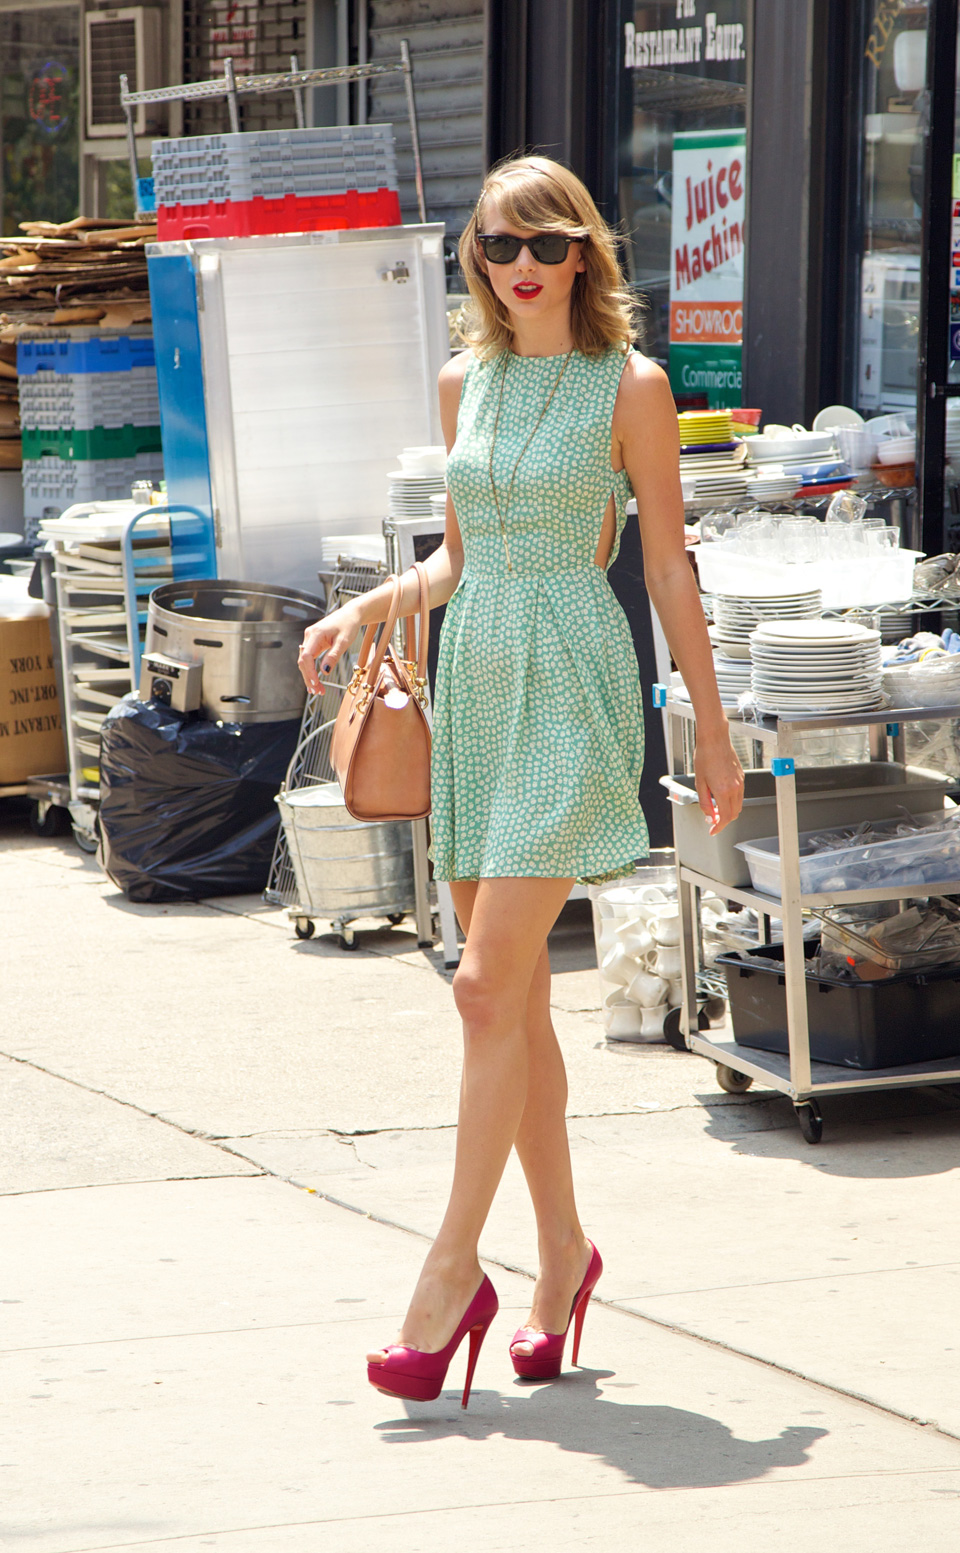 Mint green is one of our fave summer colors, so we were delighted to see TSwift head out in this printed mini dress.